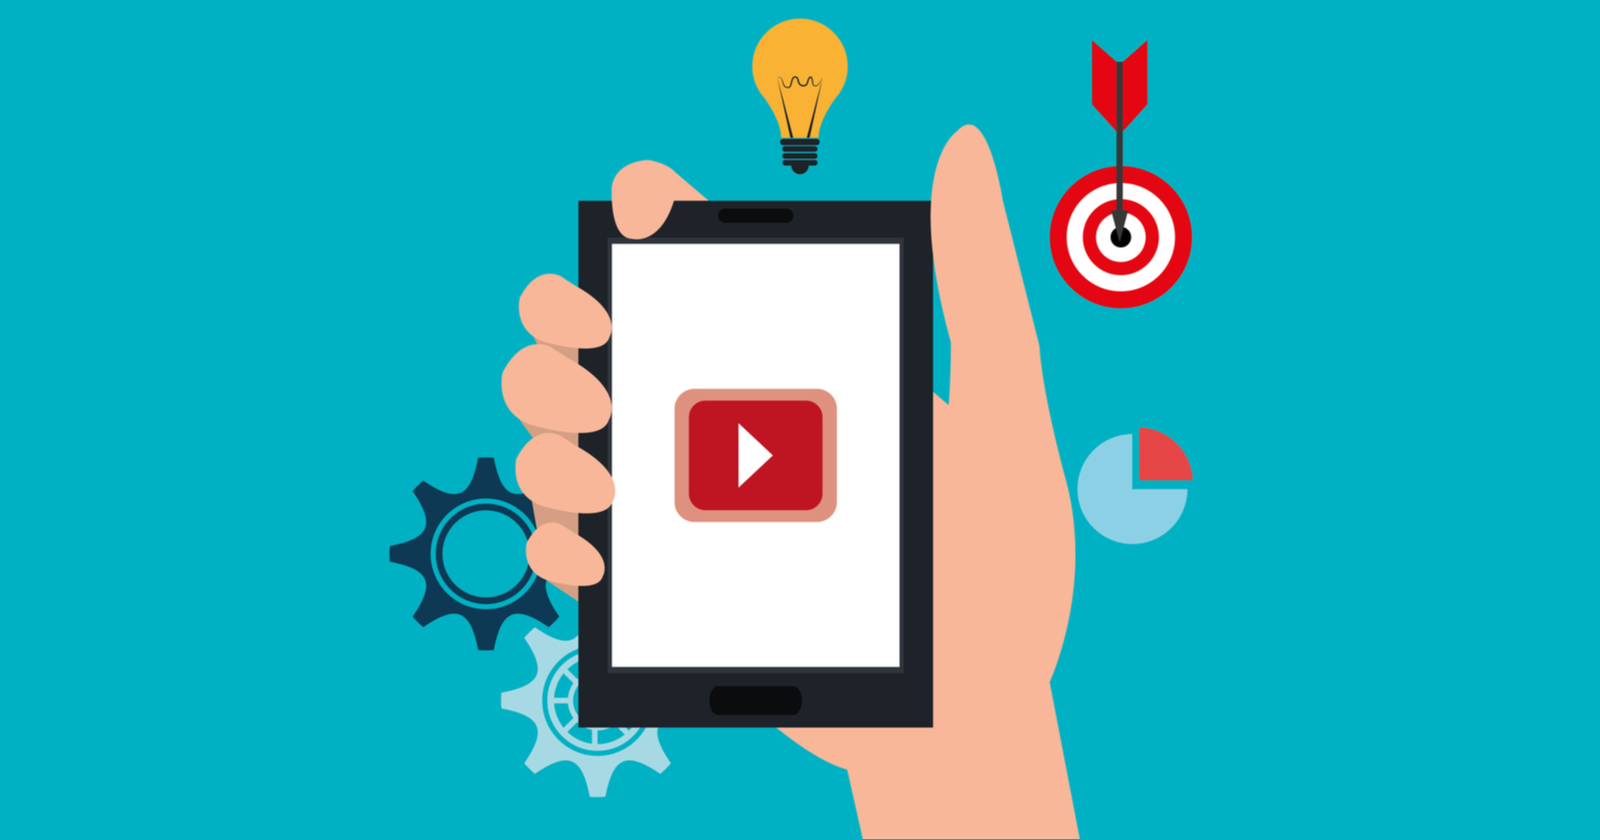 Video SEO: 10 Steps to Optimizing Videos for Search and Discovery via @sejournal, @gregjarboe